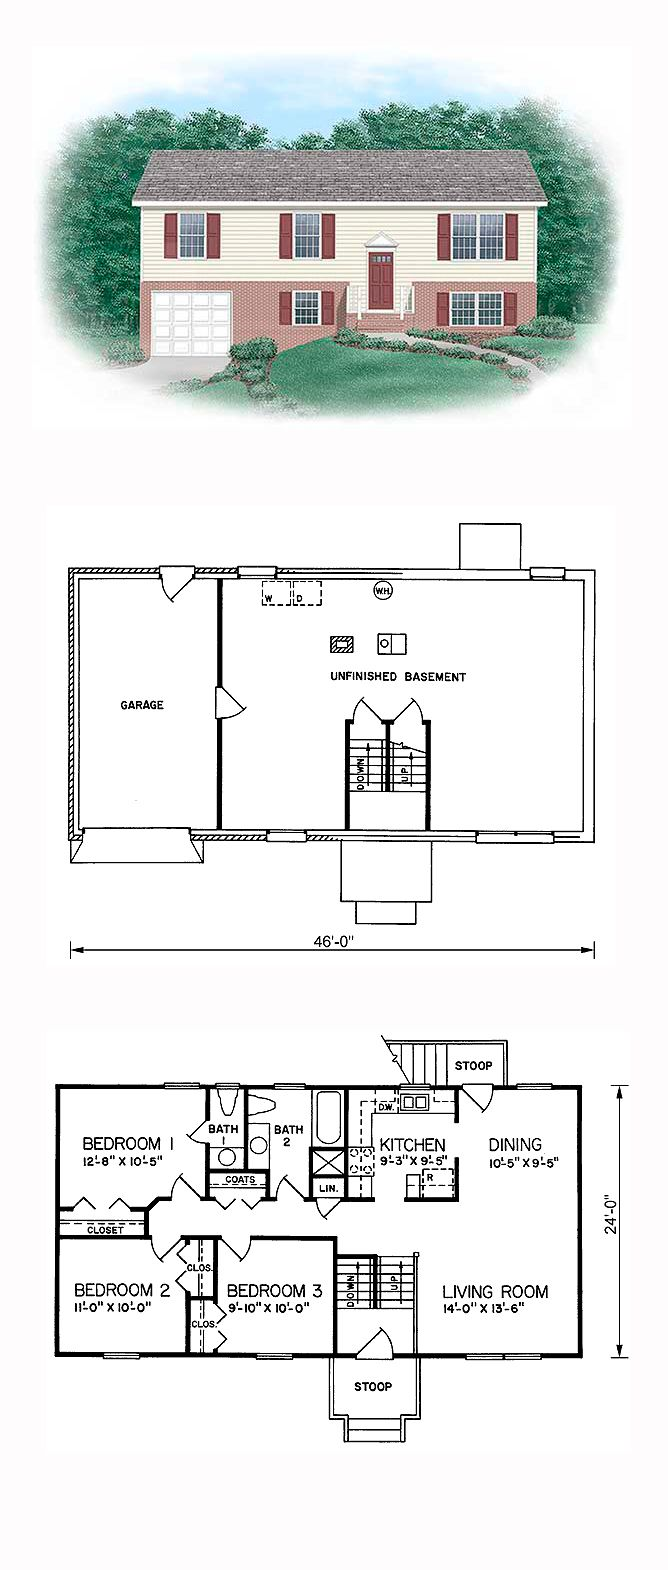 16 best split level house plans images on pinterest cool house split level cool house plan id chp 24149 total living area 1104